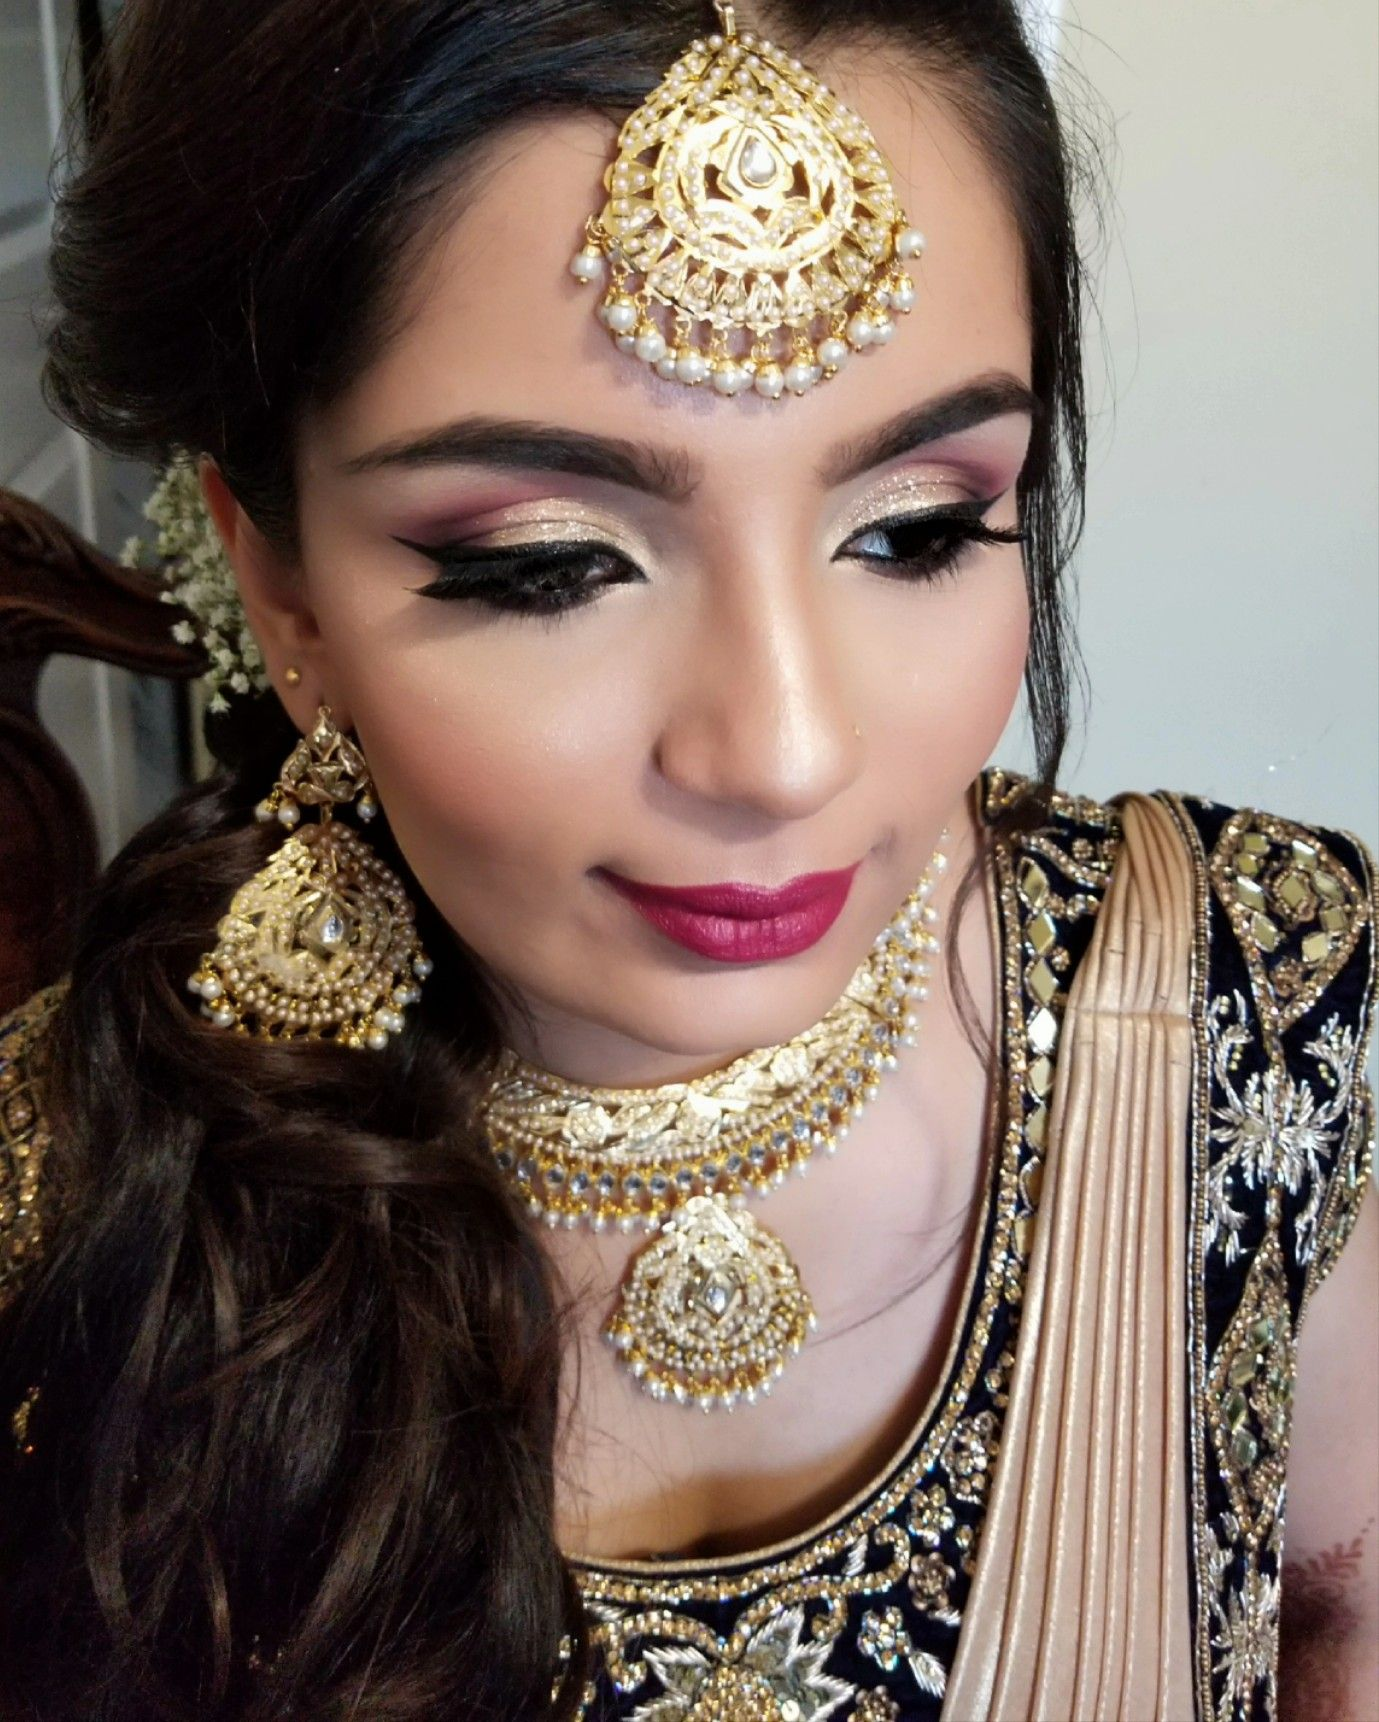 makeup and hair done by me edmonton makeup artist east indian bridal